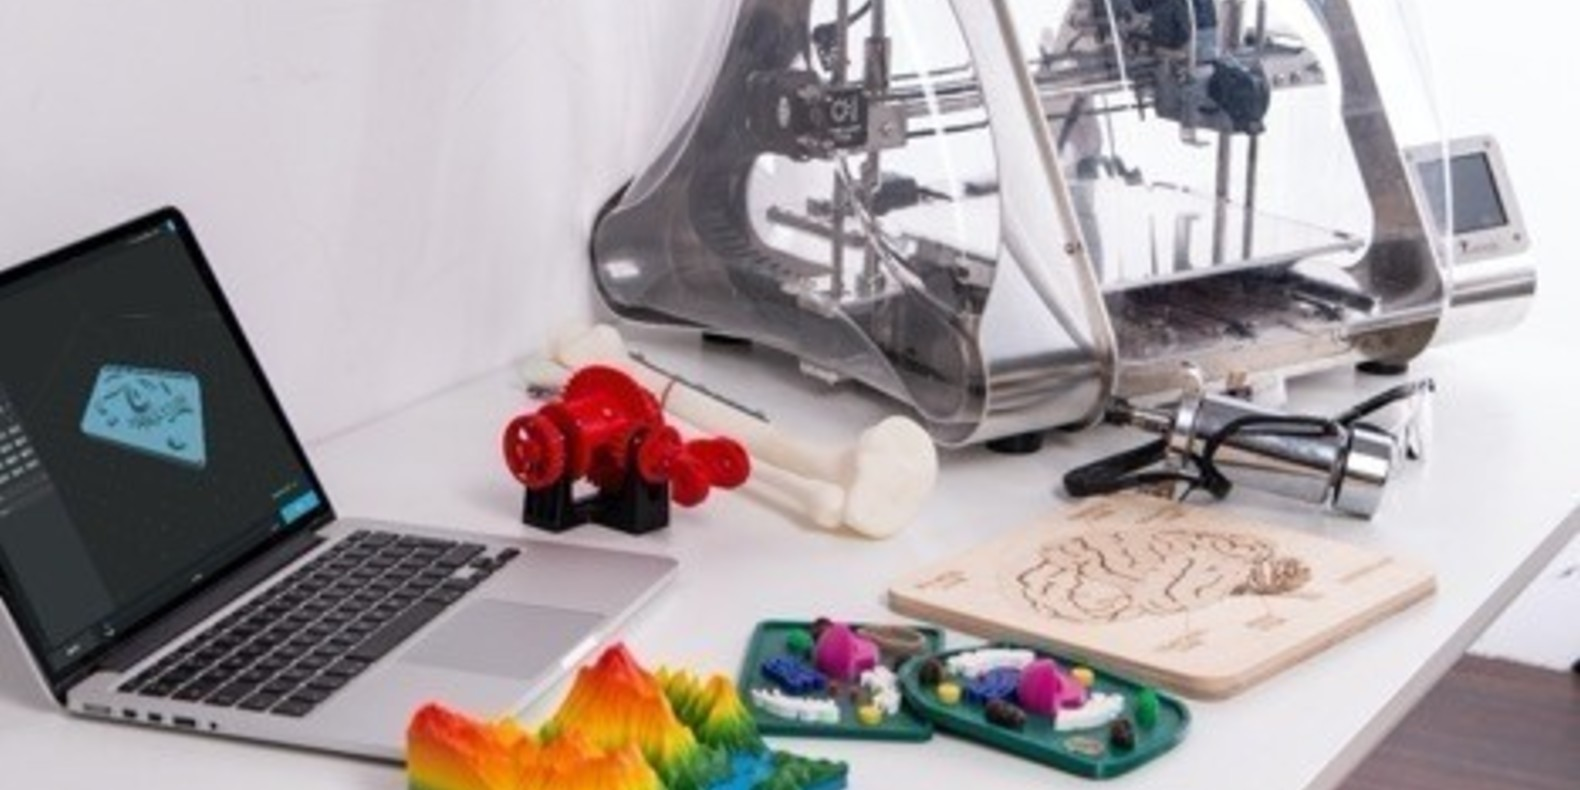 How to make stationery using a 3D printer?